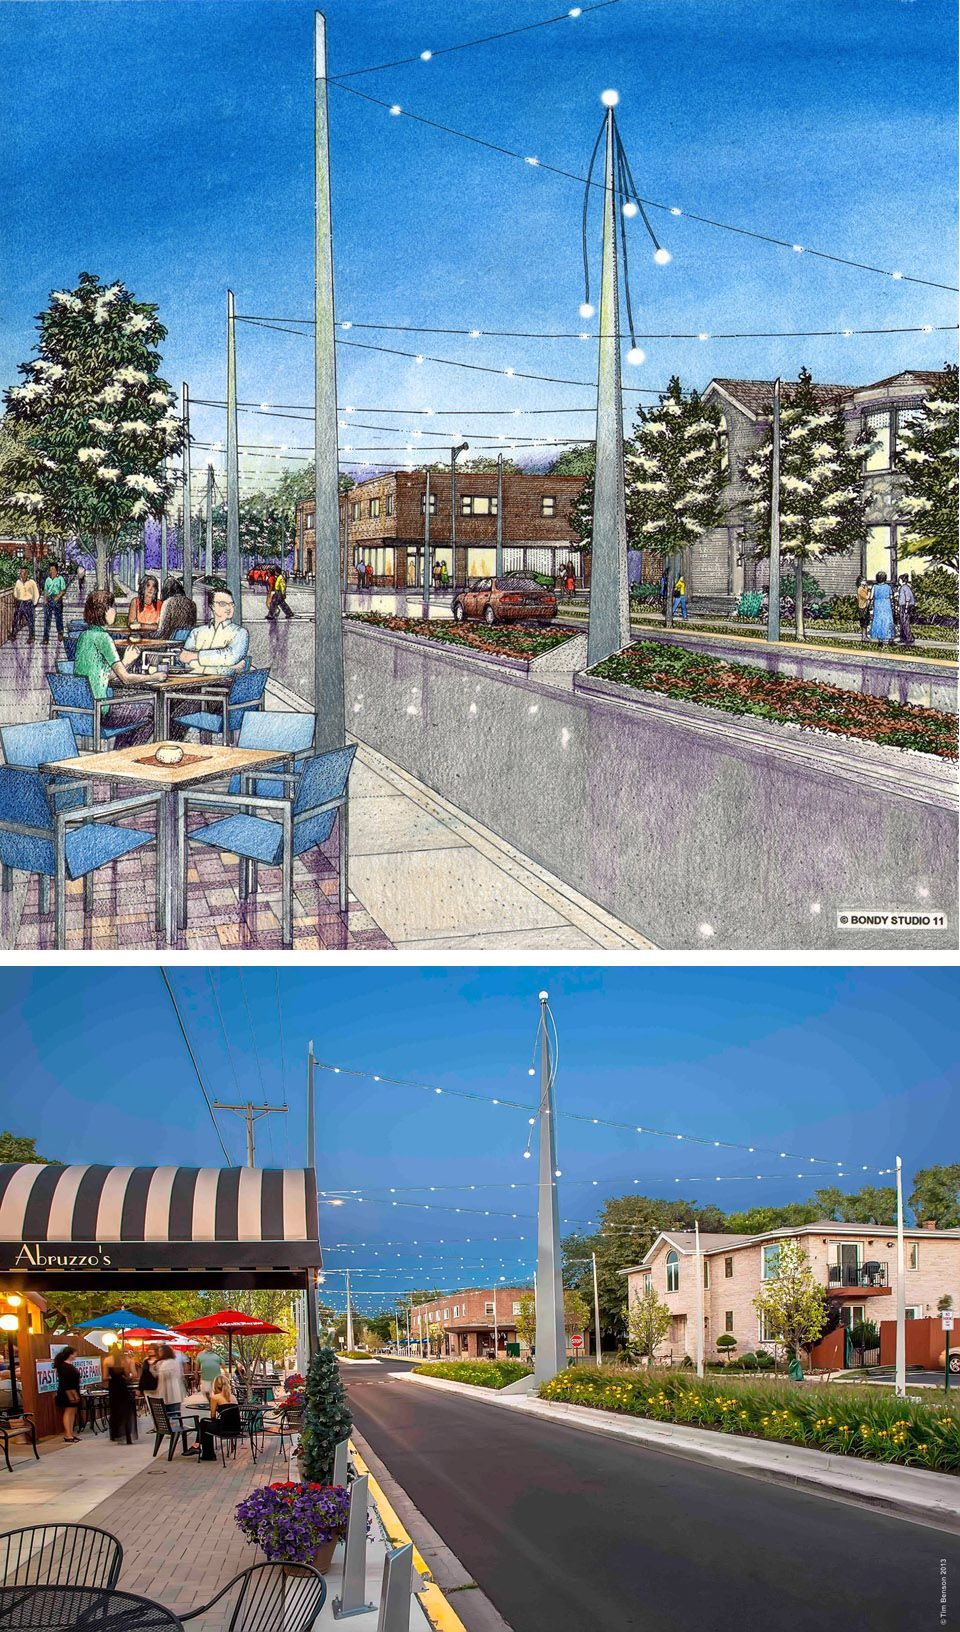 Marvelous Streetscape Design By Wolff Landscape Architecture. Rendering By Bruce Bondy